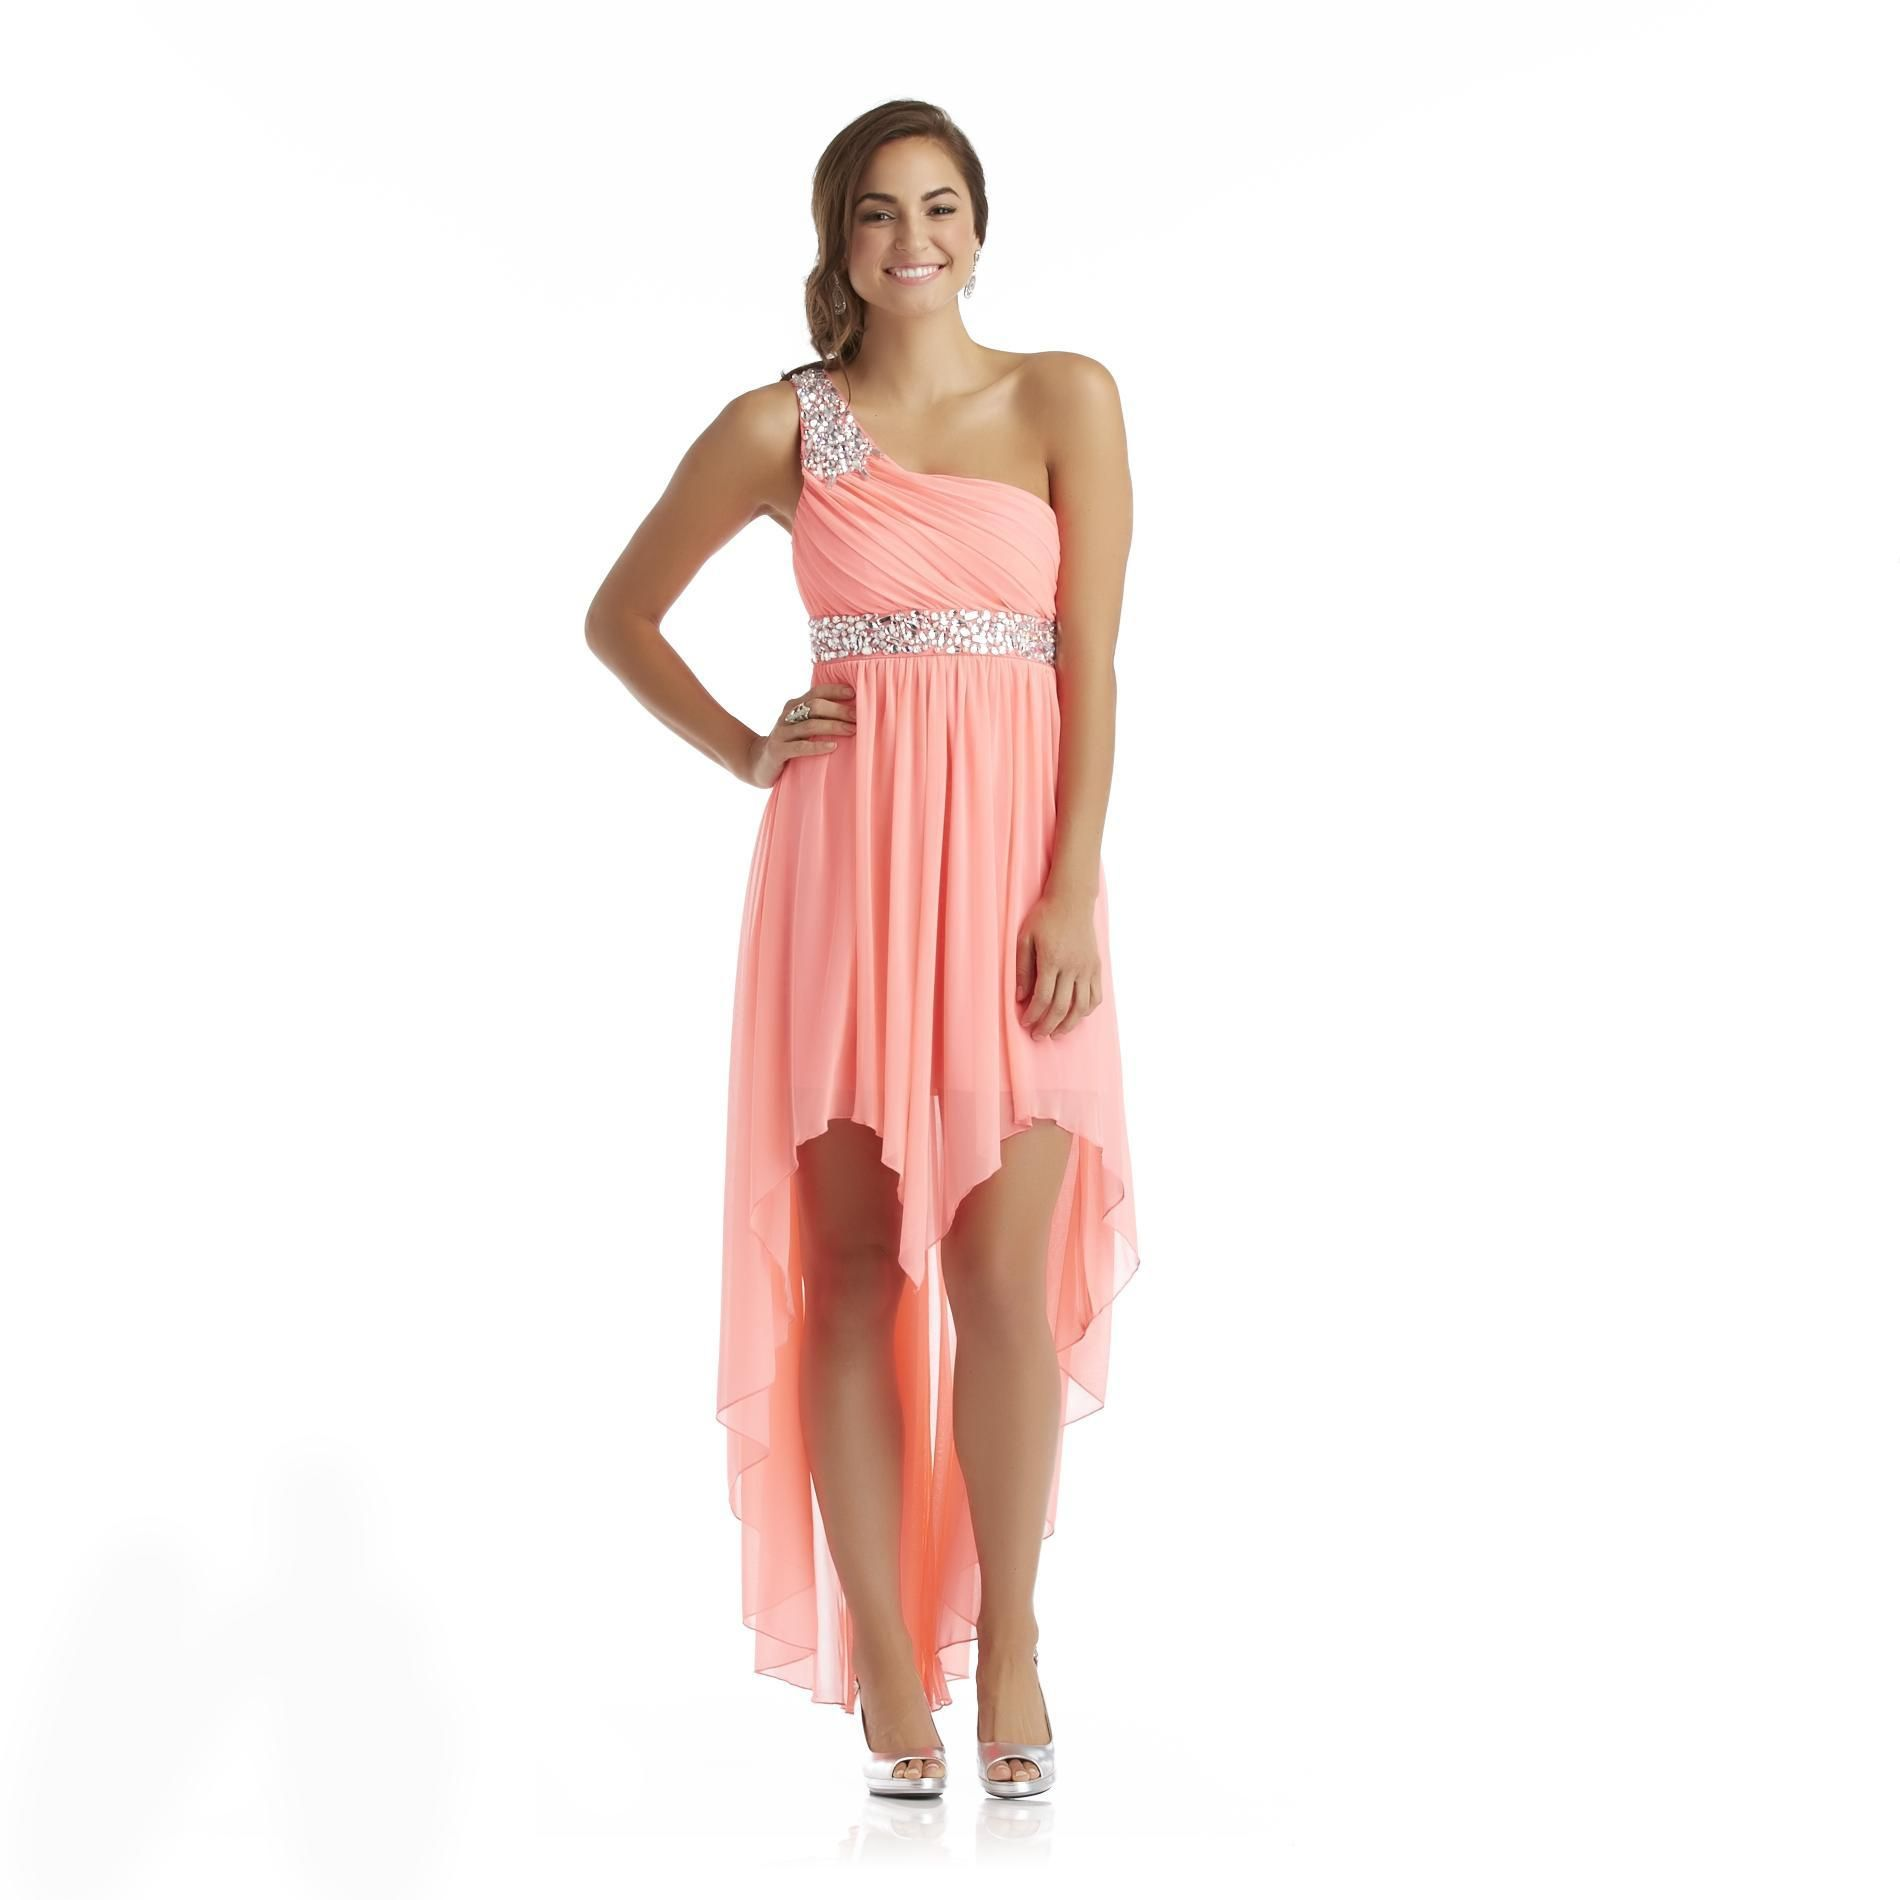 cdc1aa257a8 Jcpenney Homecoming Dresses 2016